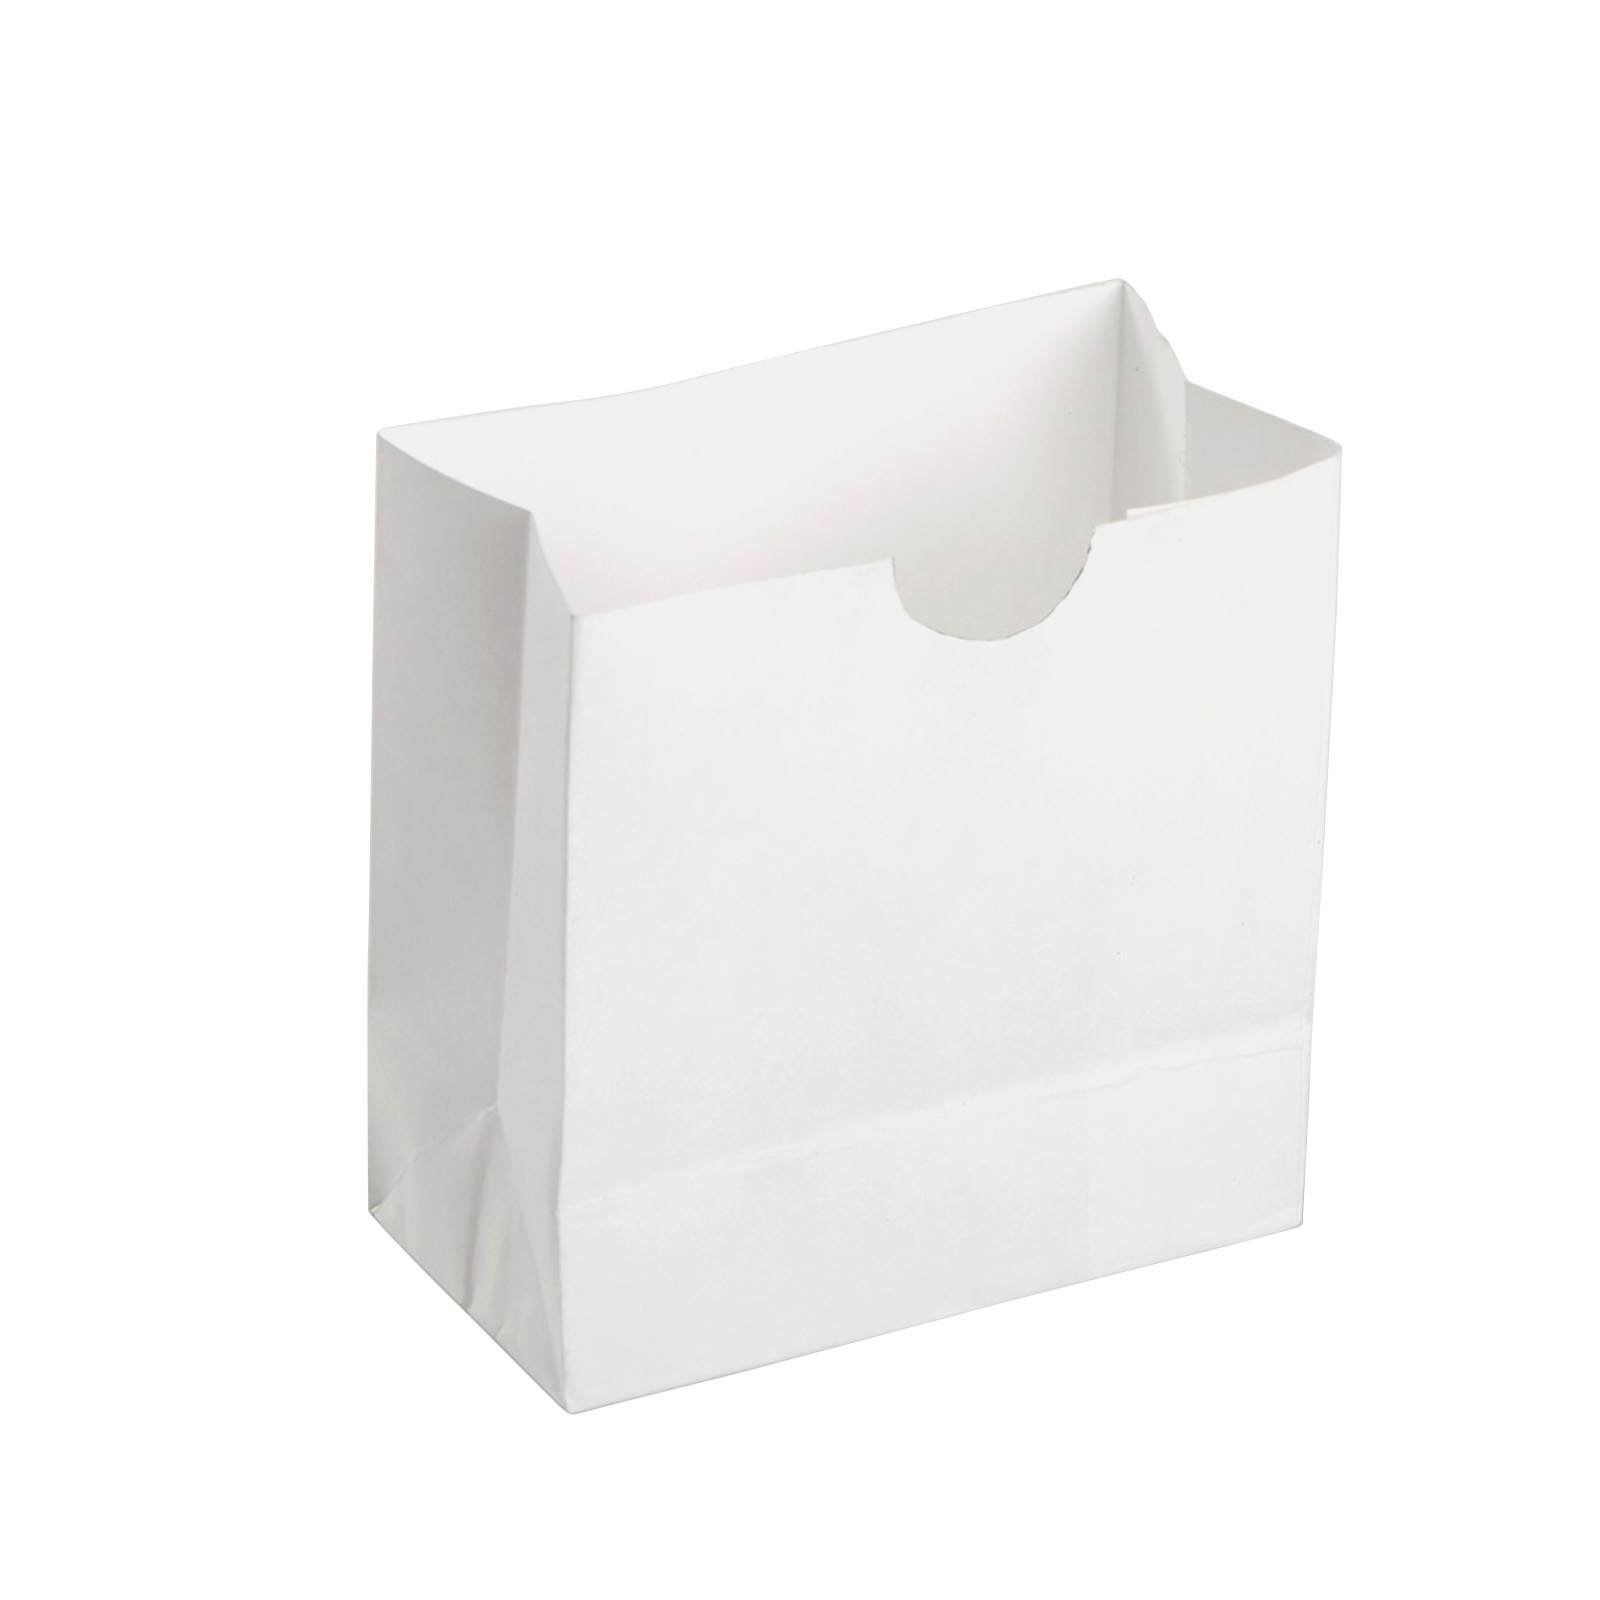 American Metalcraft SBW3 disposable take out container